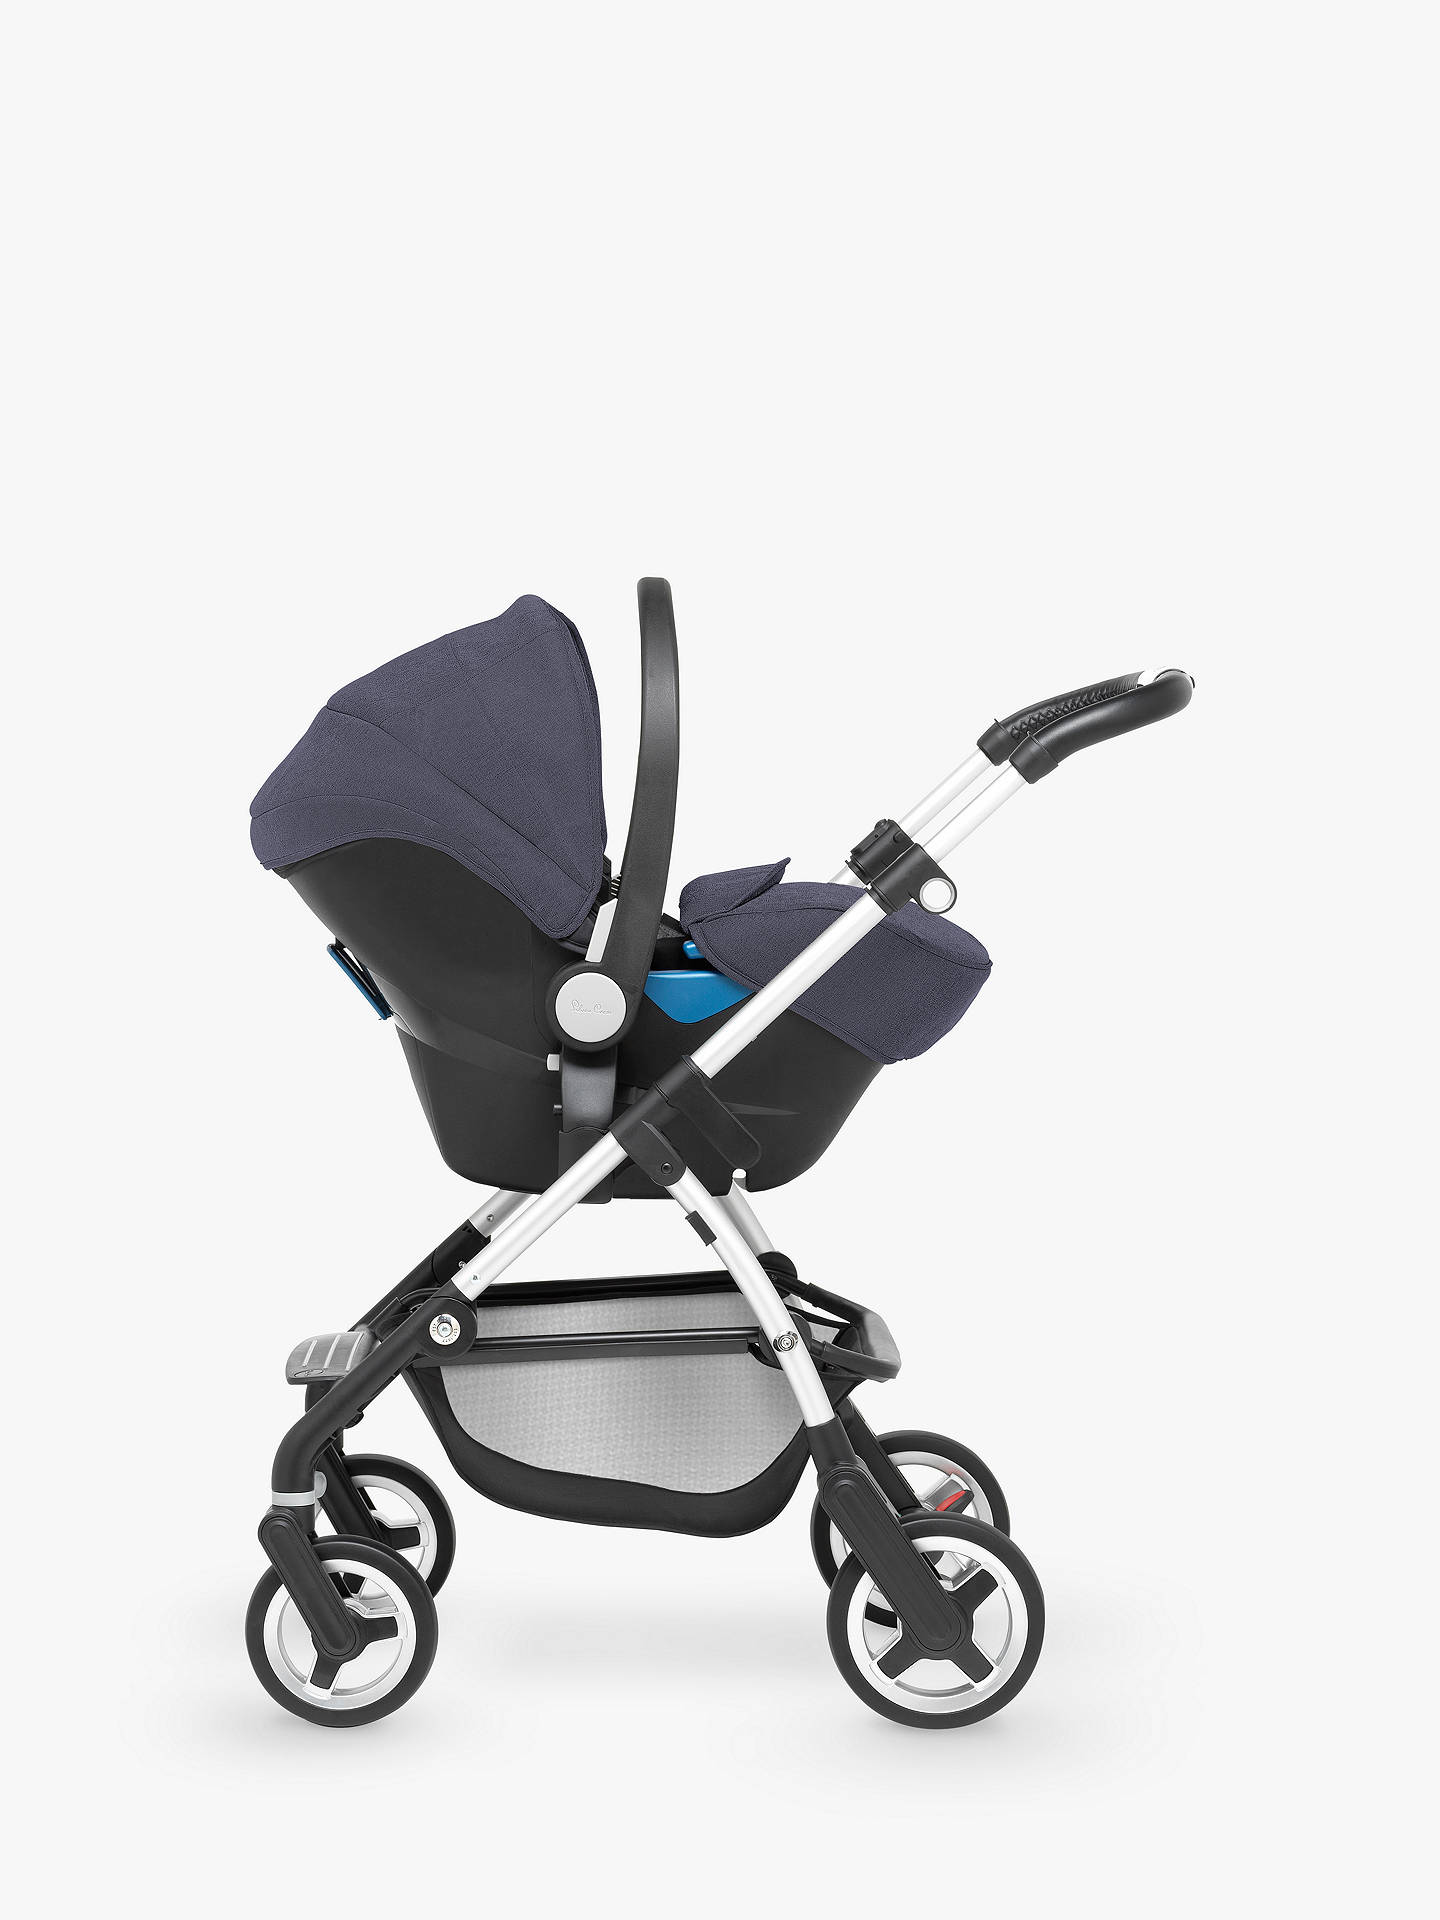 BuySilver Cross Wayfarer Pushchair, Chassis, Carrycot and Essentials Pack, Midnight Blue Online at johnlewis.com